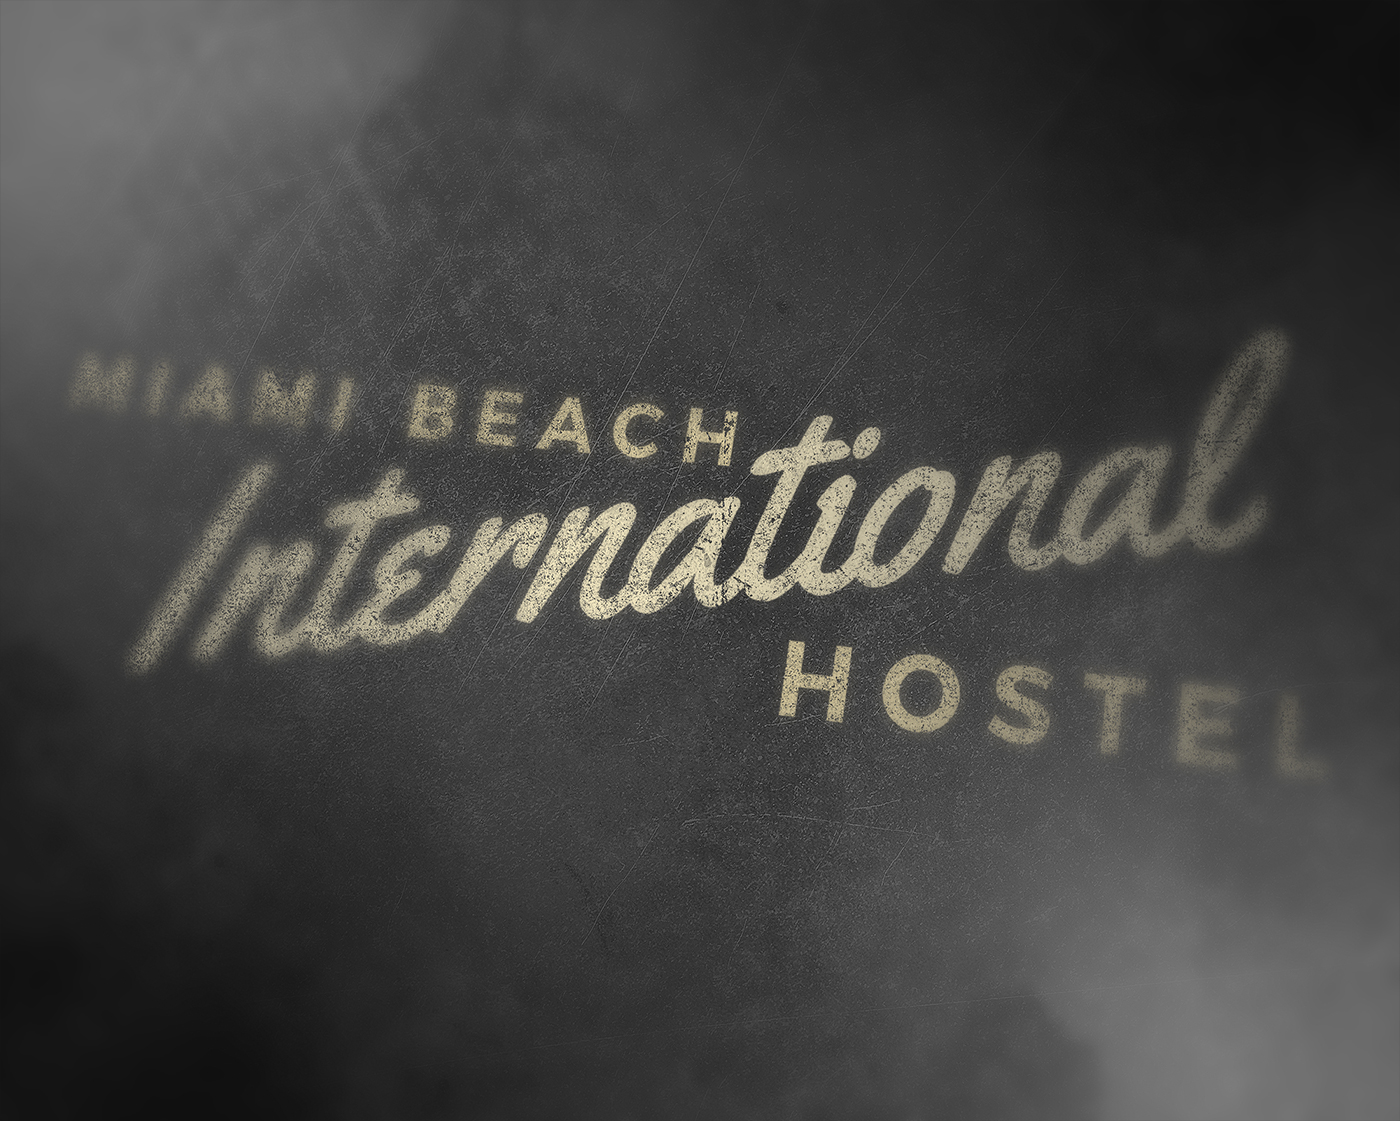 International Hostel – Branding